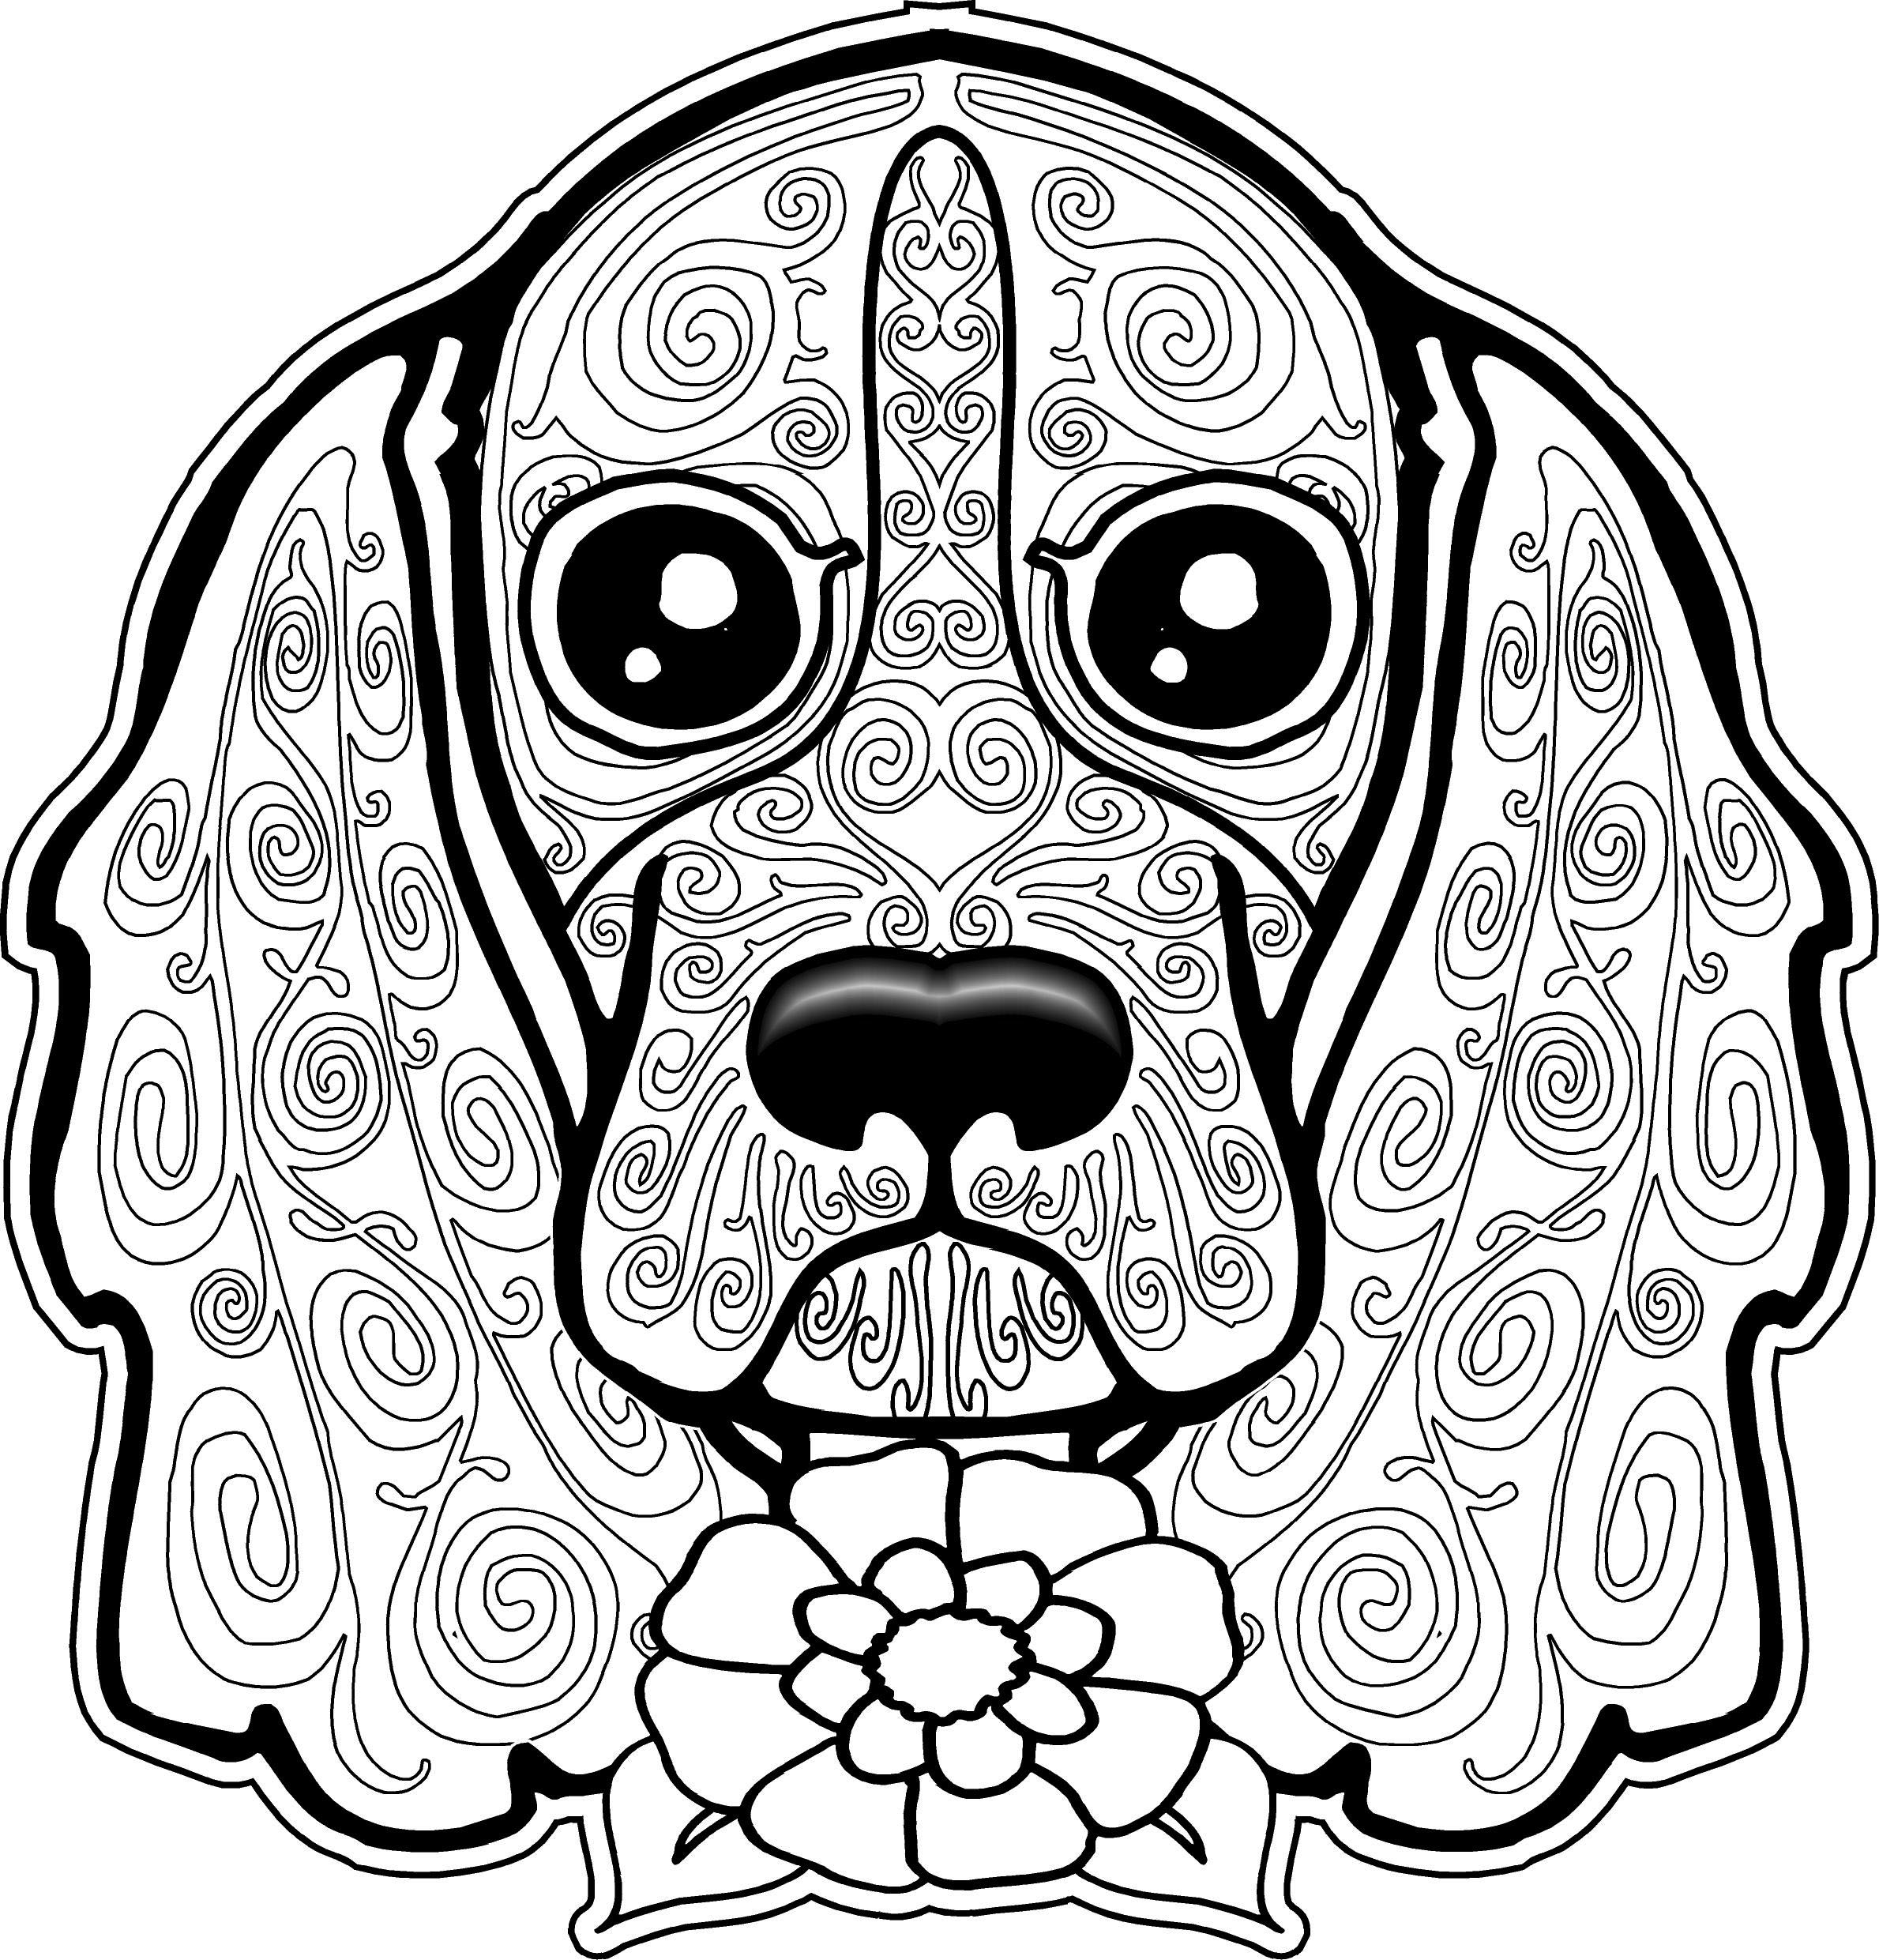 Dog Coloring Pages For Adults Dog Coloring Pages For Adults Inspirationa Adult Dogs Inside